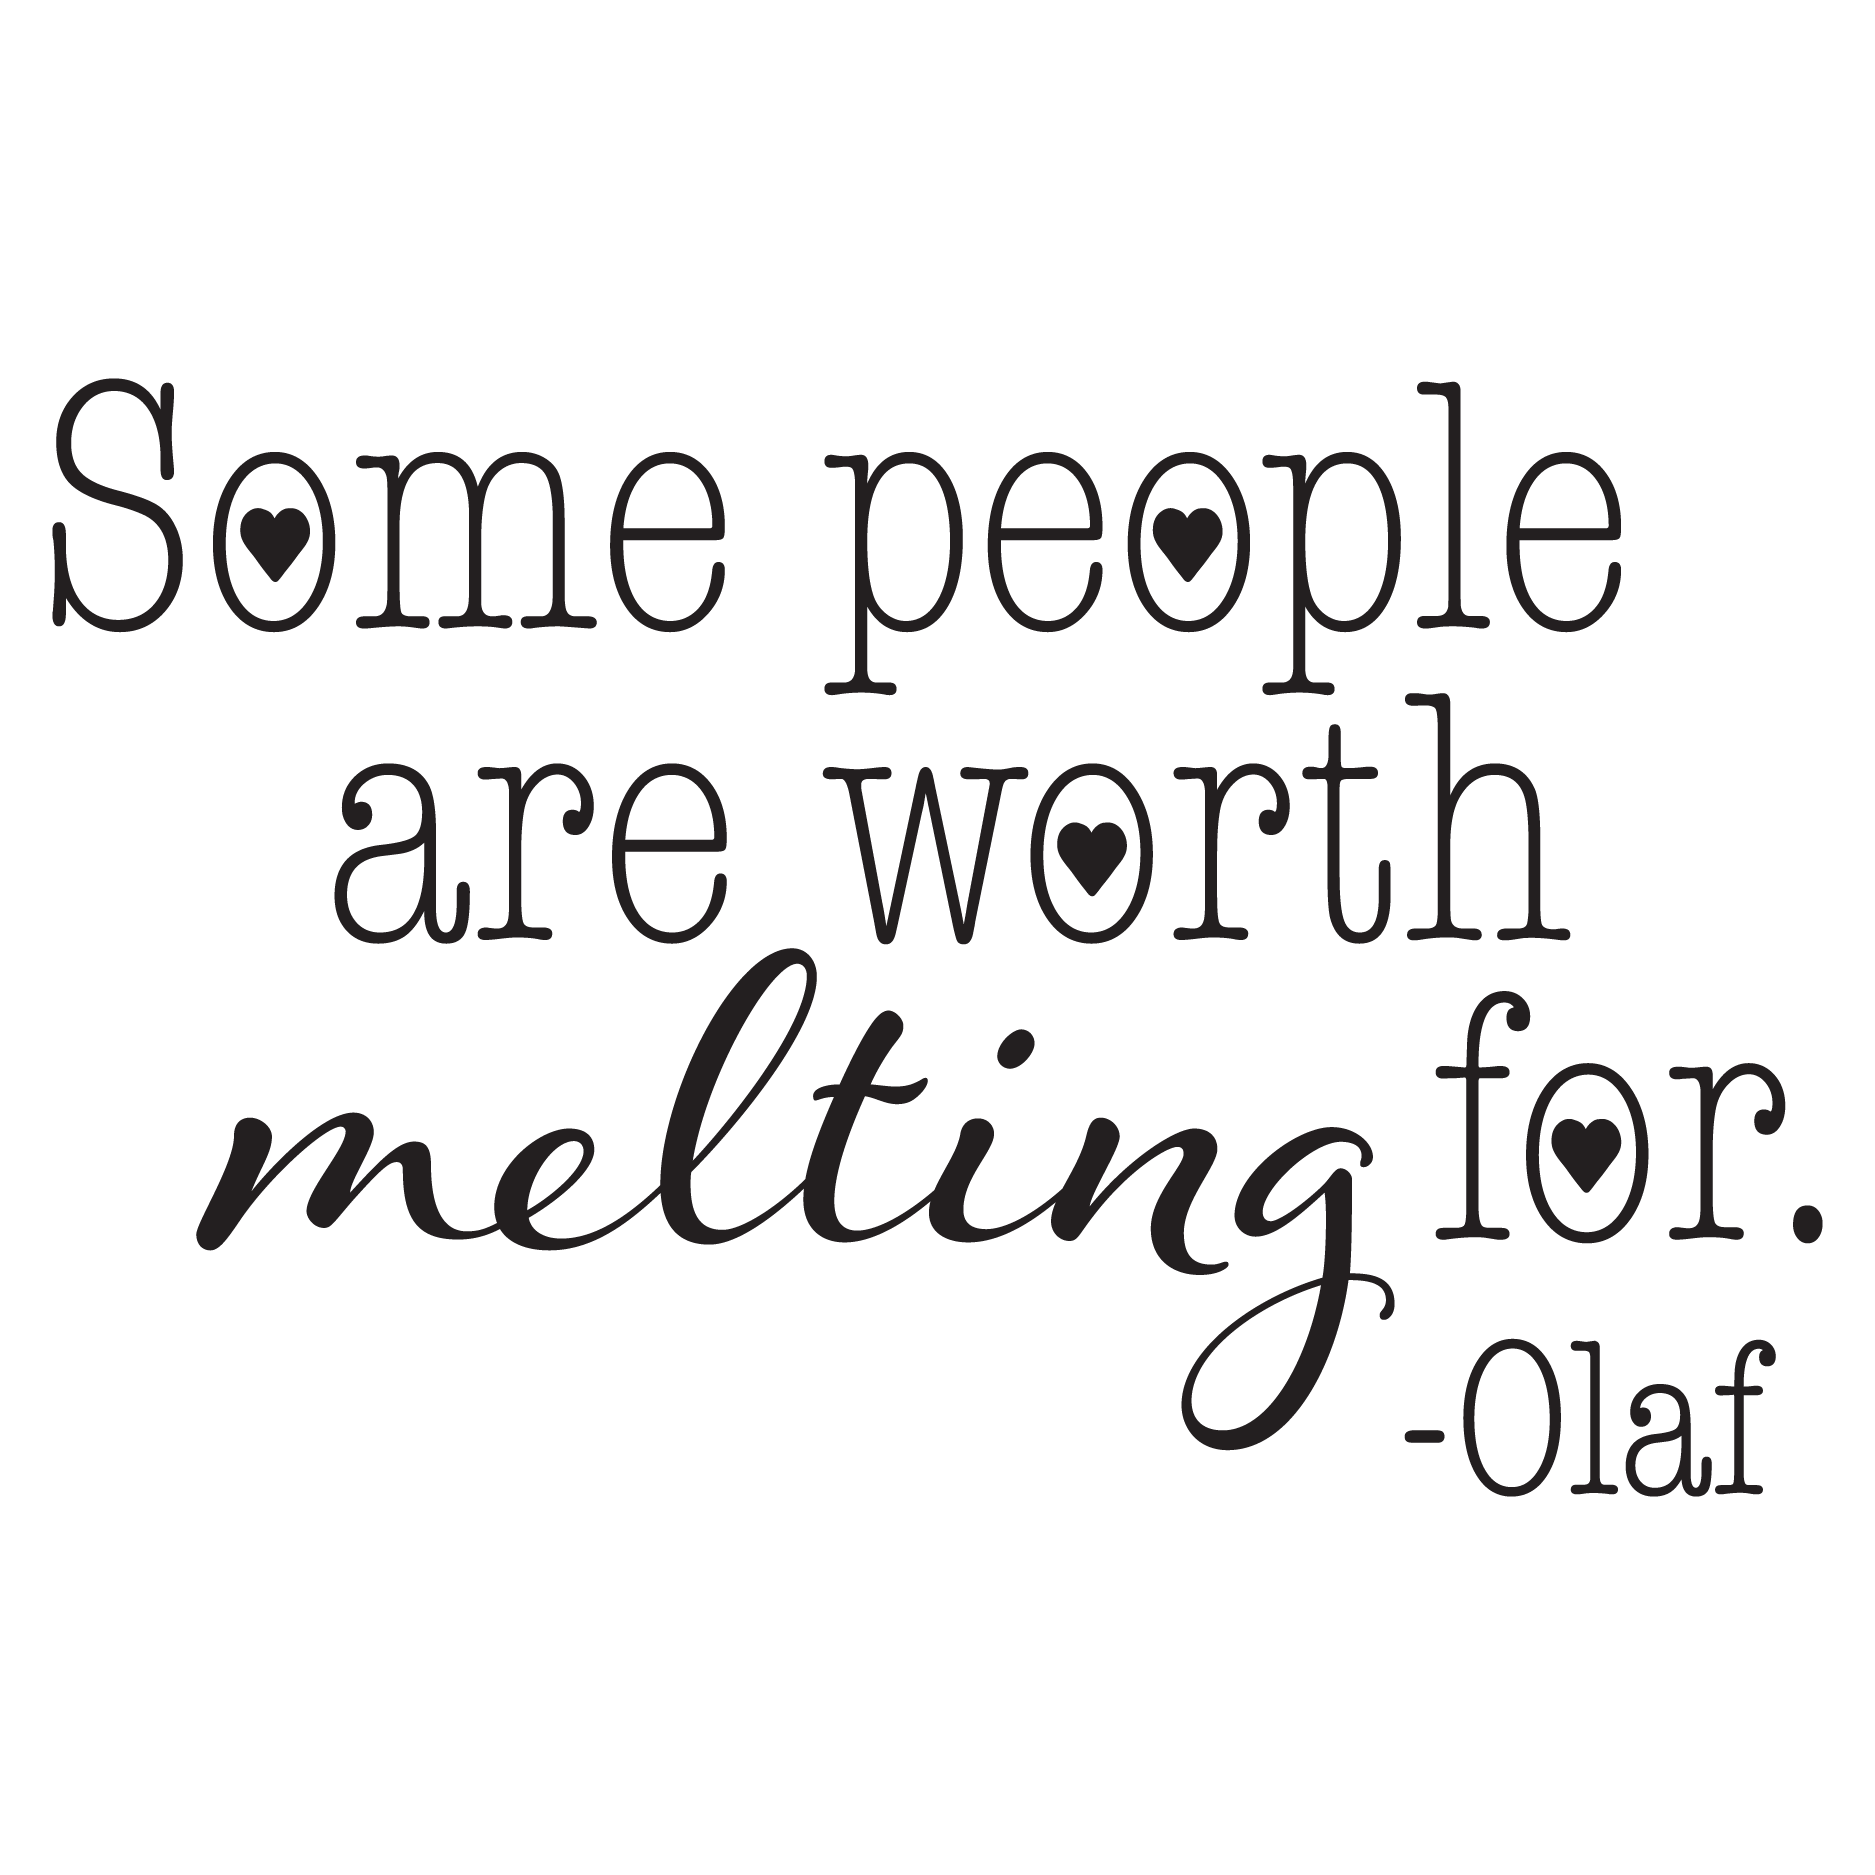 Worth Melting For Wall Quotes Decal